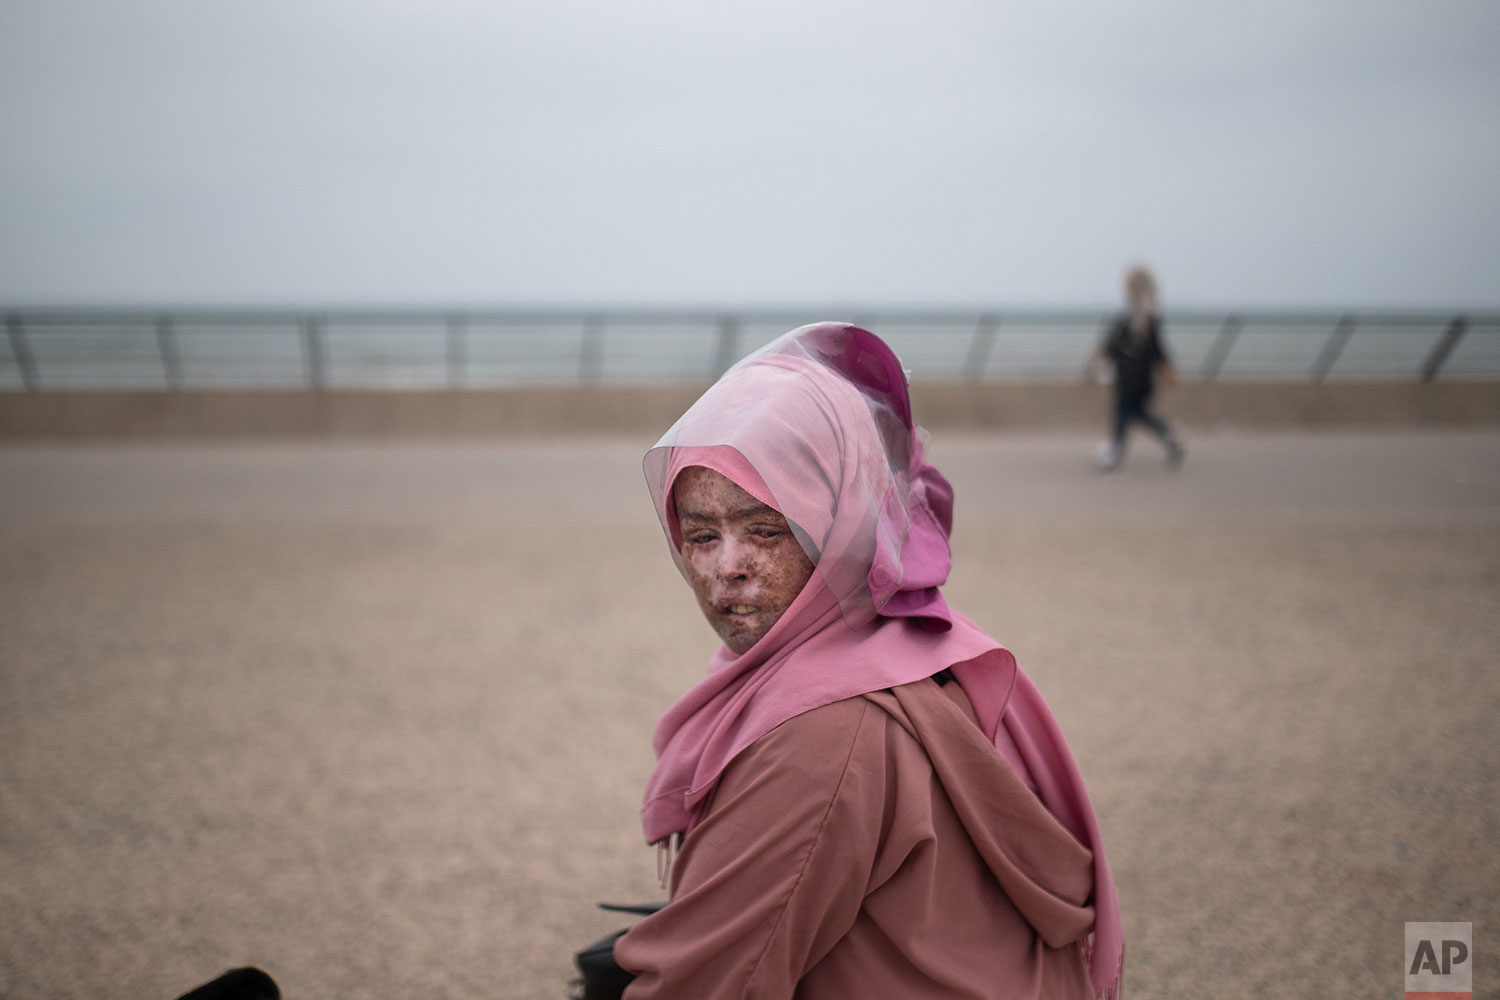 In this Wednesday, July 24, 2019 photo, Fatimazehra Belloucy, 25, a woman affected by a rare disorder called xeroderma pigmentosum, or XP, poses for a portrait in Casablanca, Morocco. . (AP Photo/Mosa'ab Elshamy)